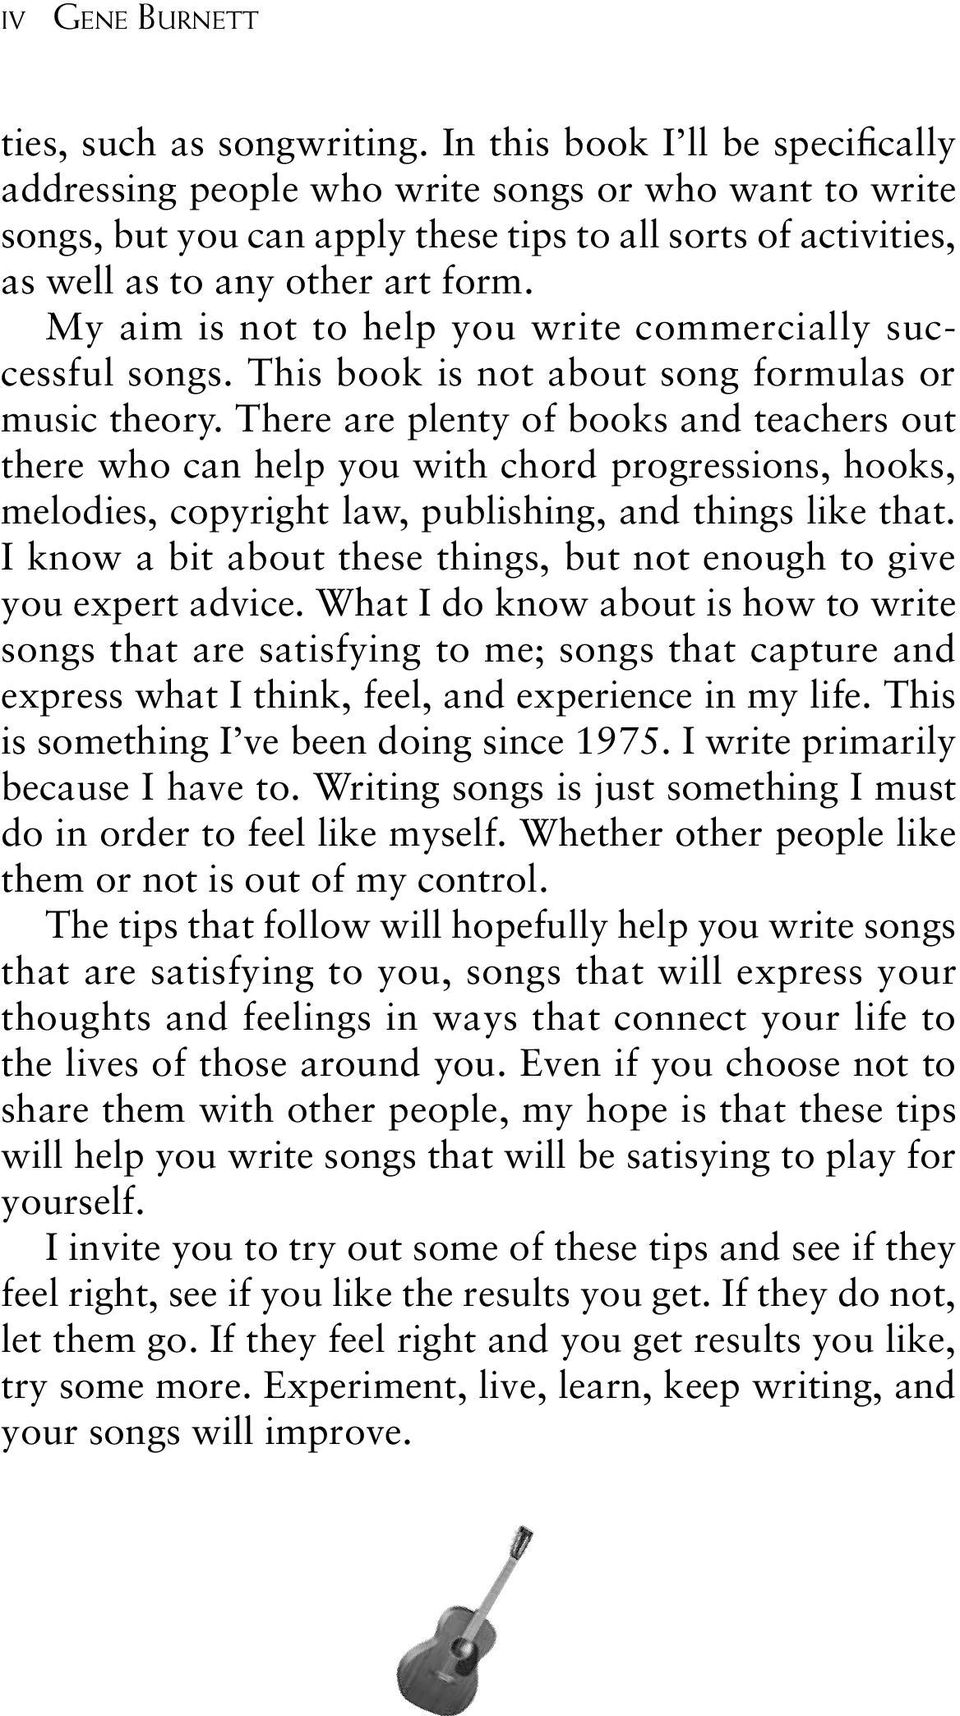 My aim is not to help you write commercially successful songs. This book is not about song formulas or music theory.